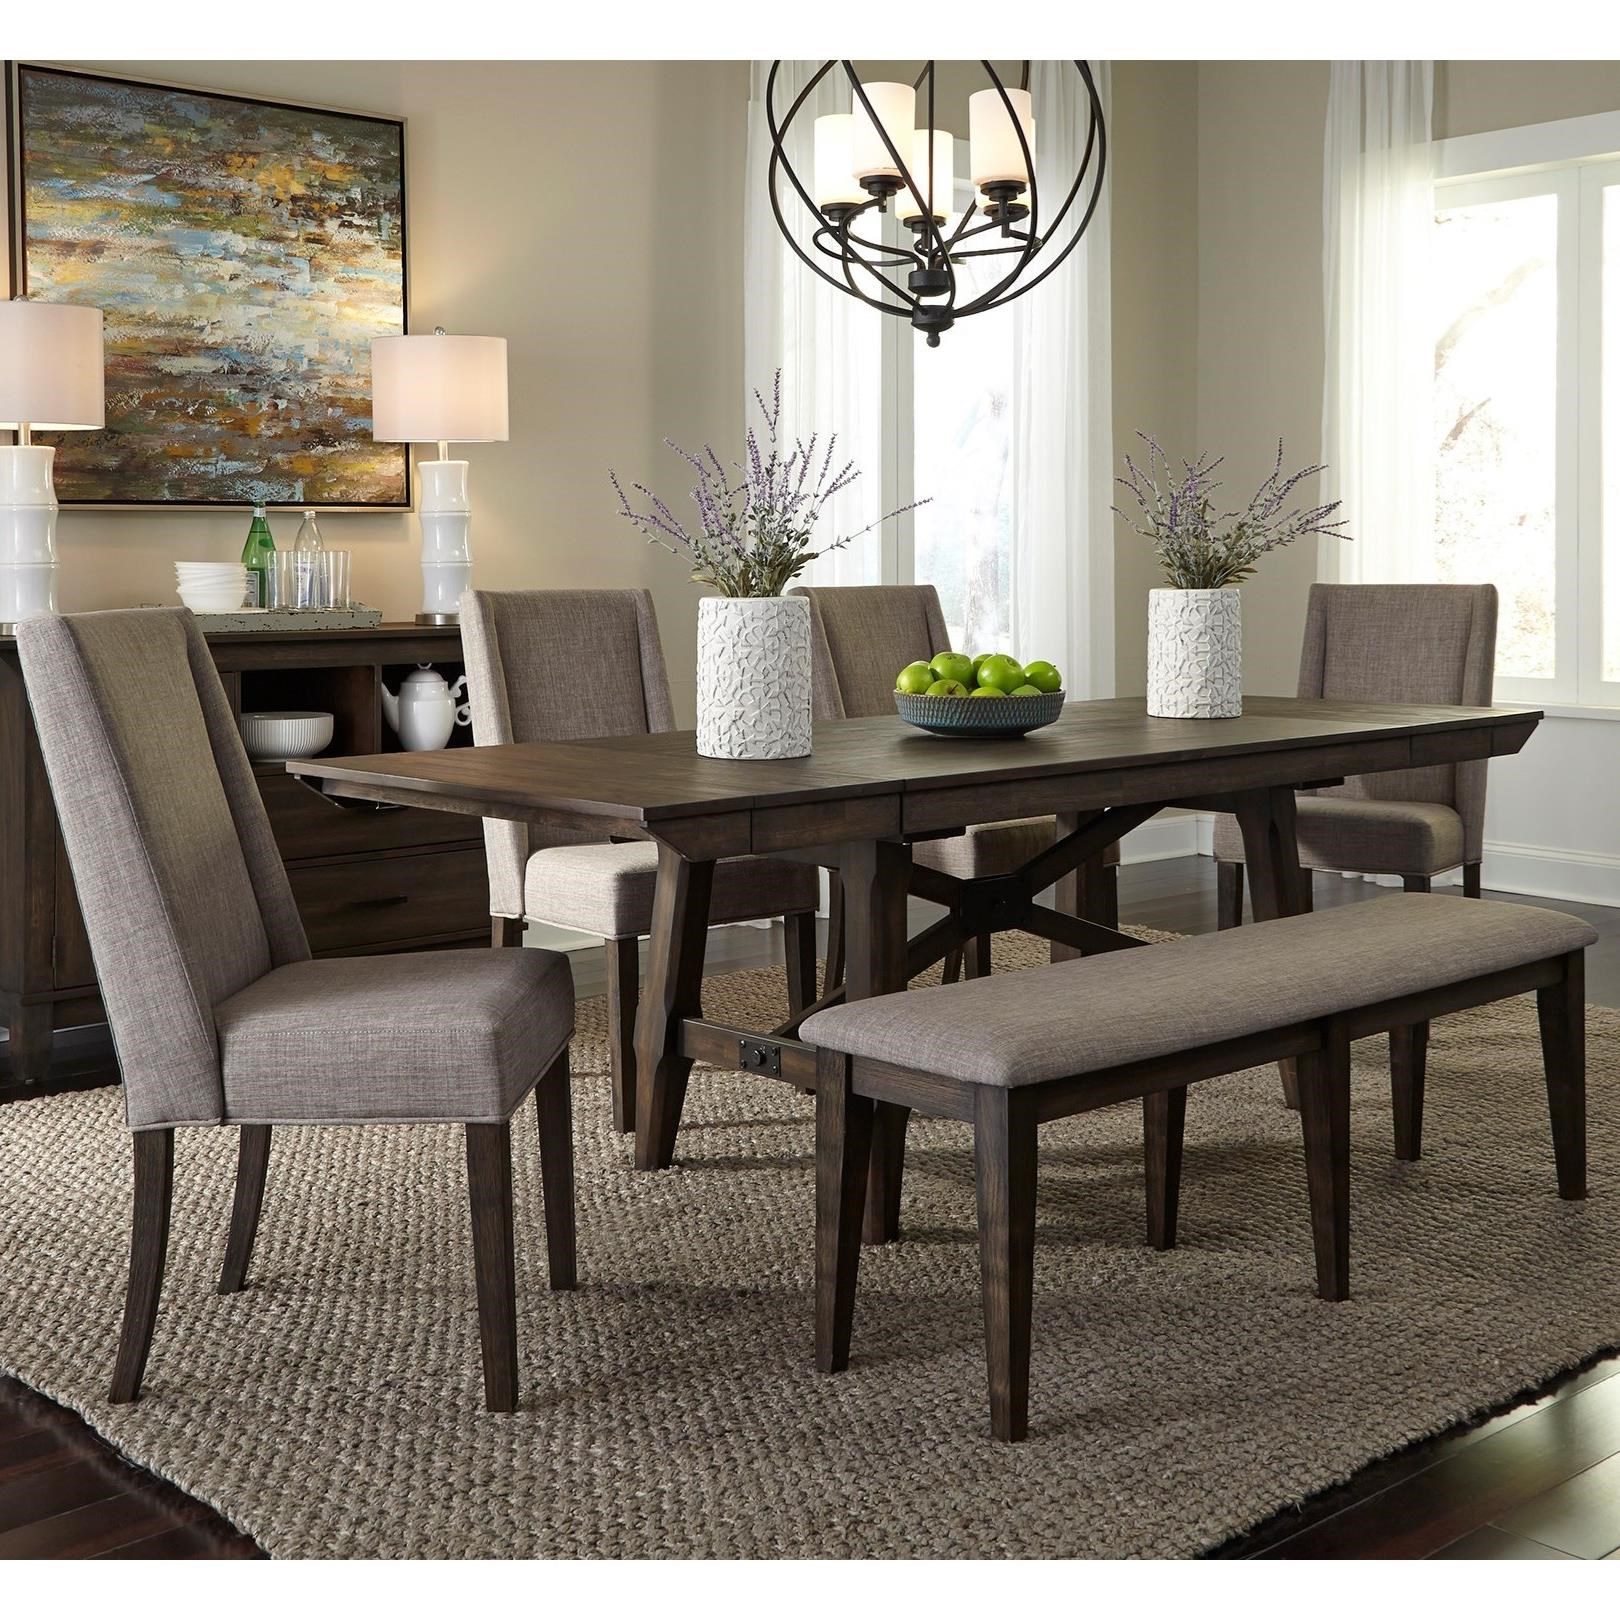 Double Bridge 6 Piece Trestle Table Set by Liberty Furniture at Northeast Factory Direct